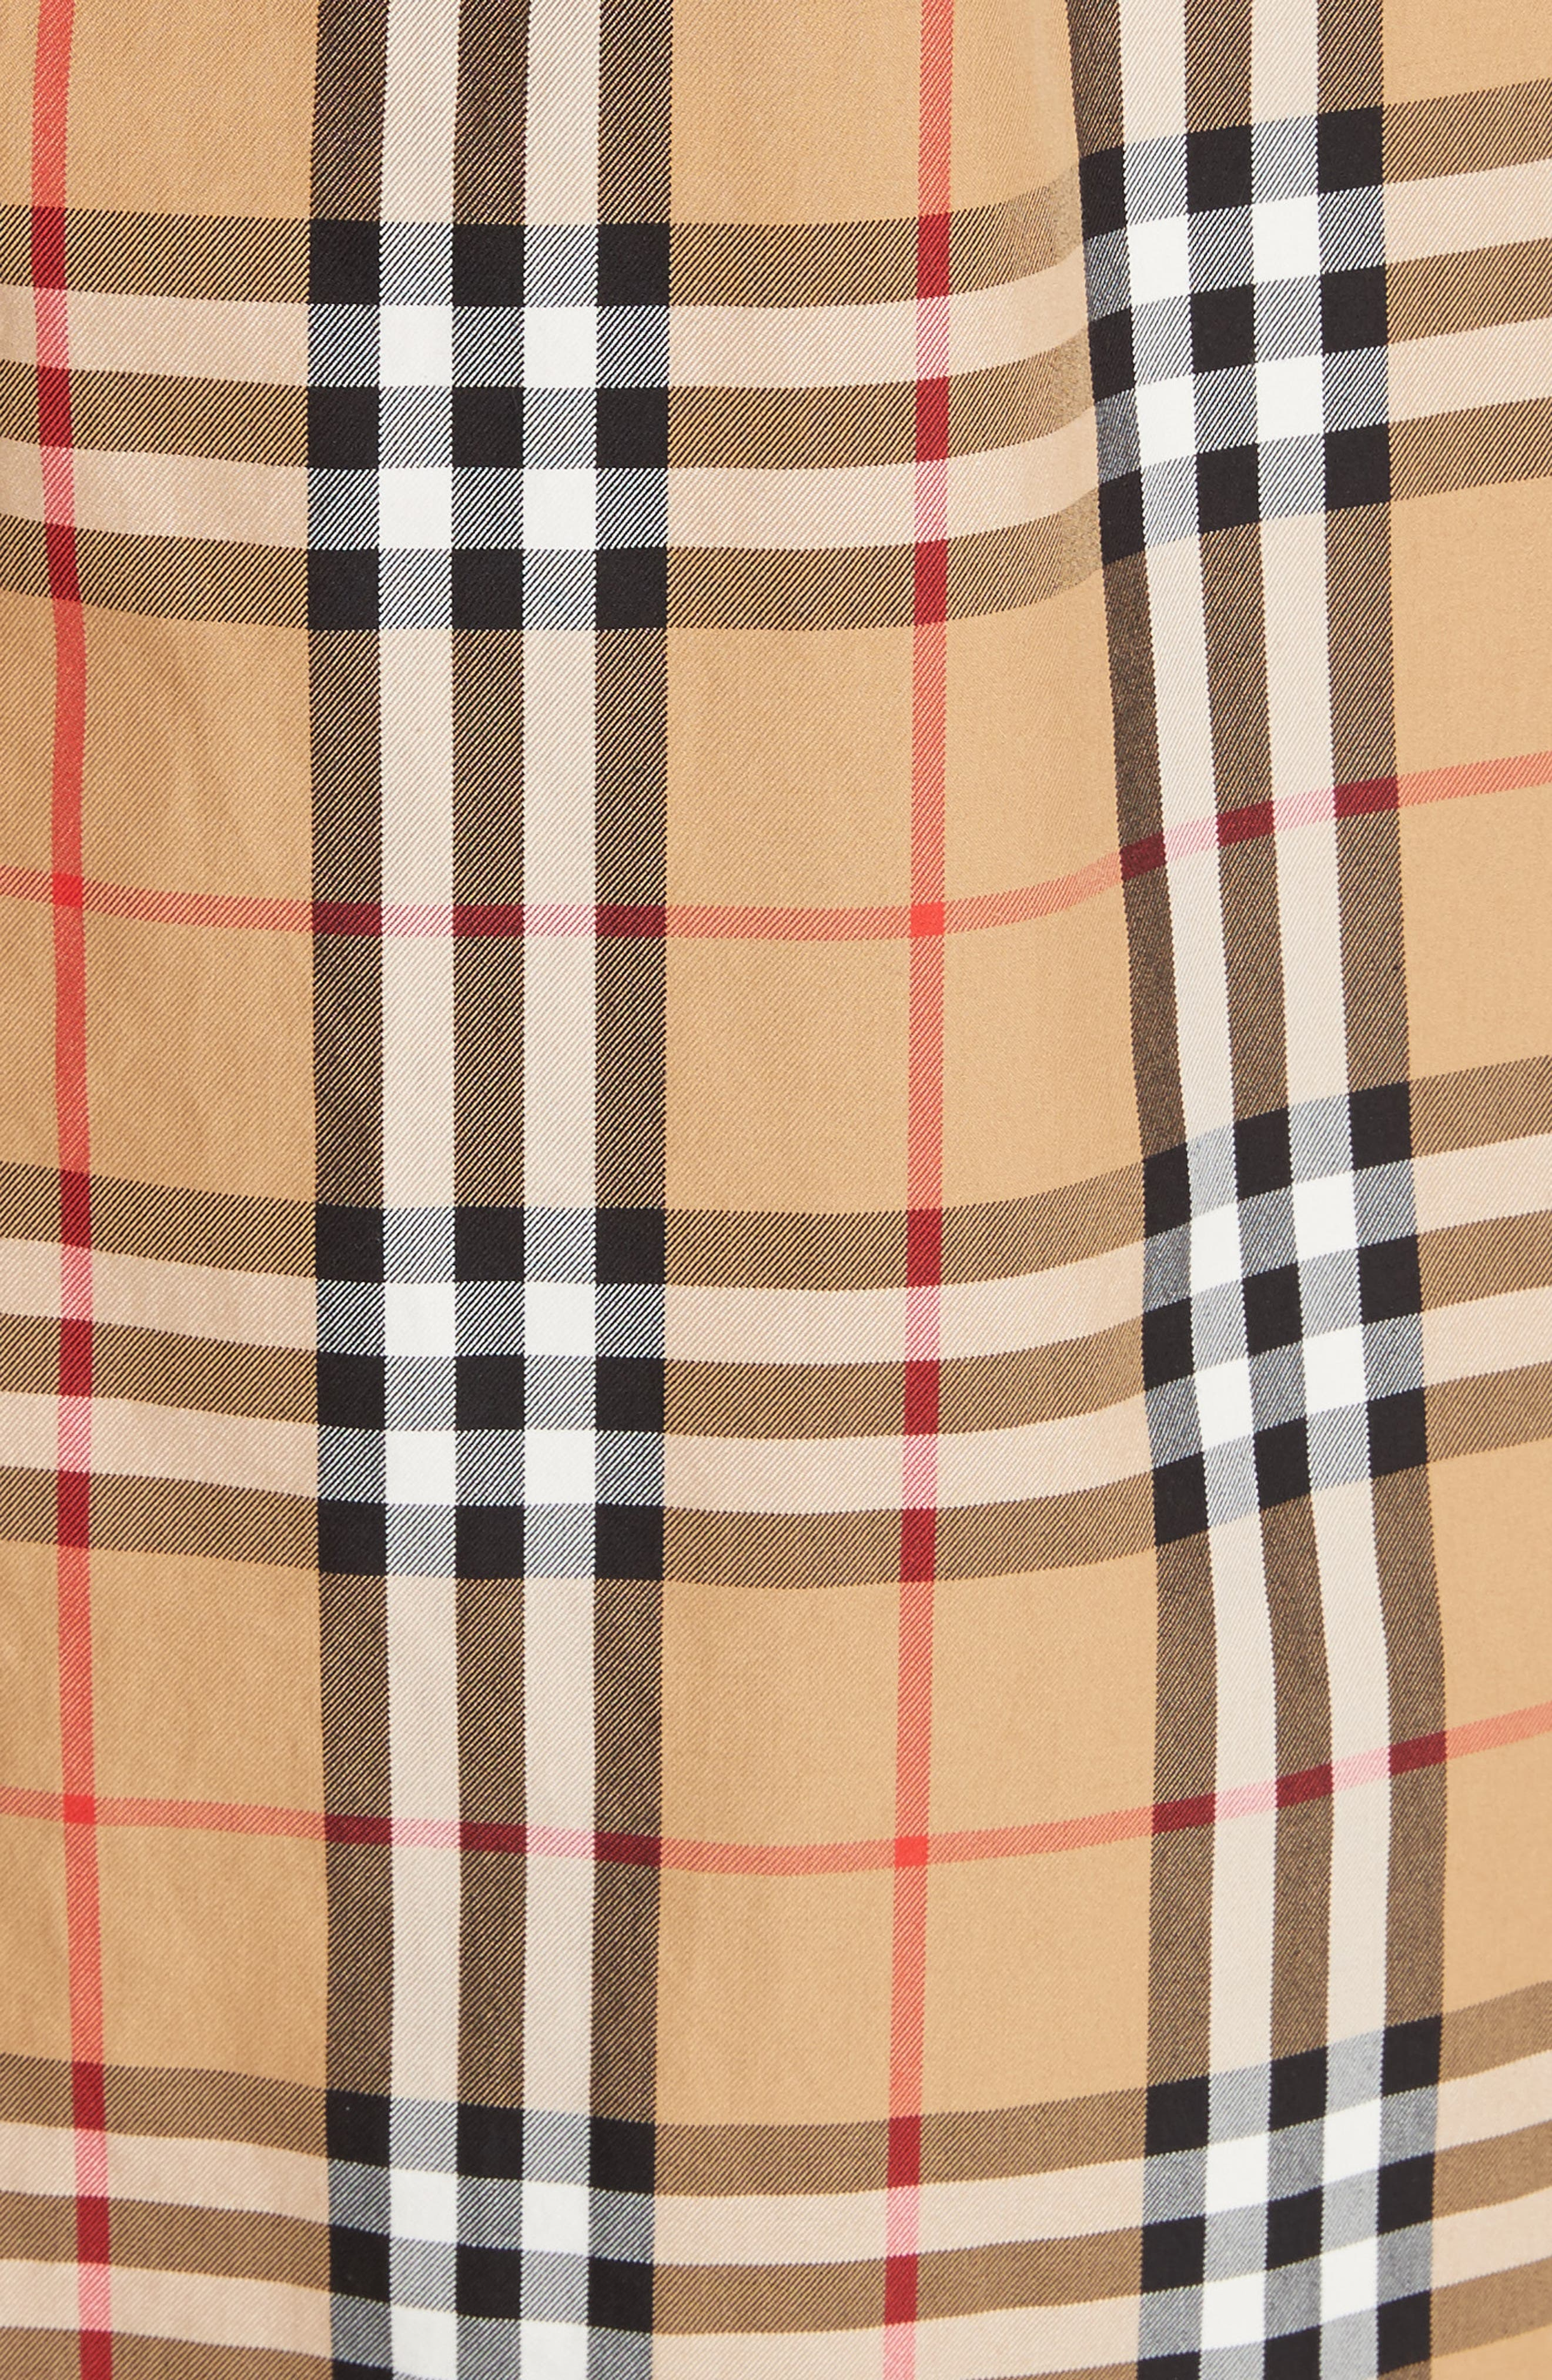 BURBERRY, Eastheath Vintage Check Trench Coat, Alternate thumbnail 7, color, ANTIQUE YELLOW